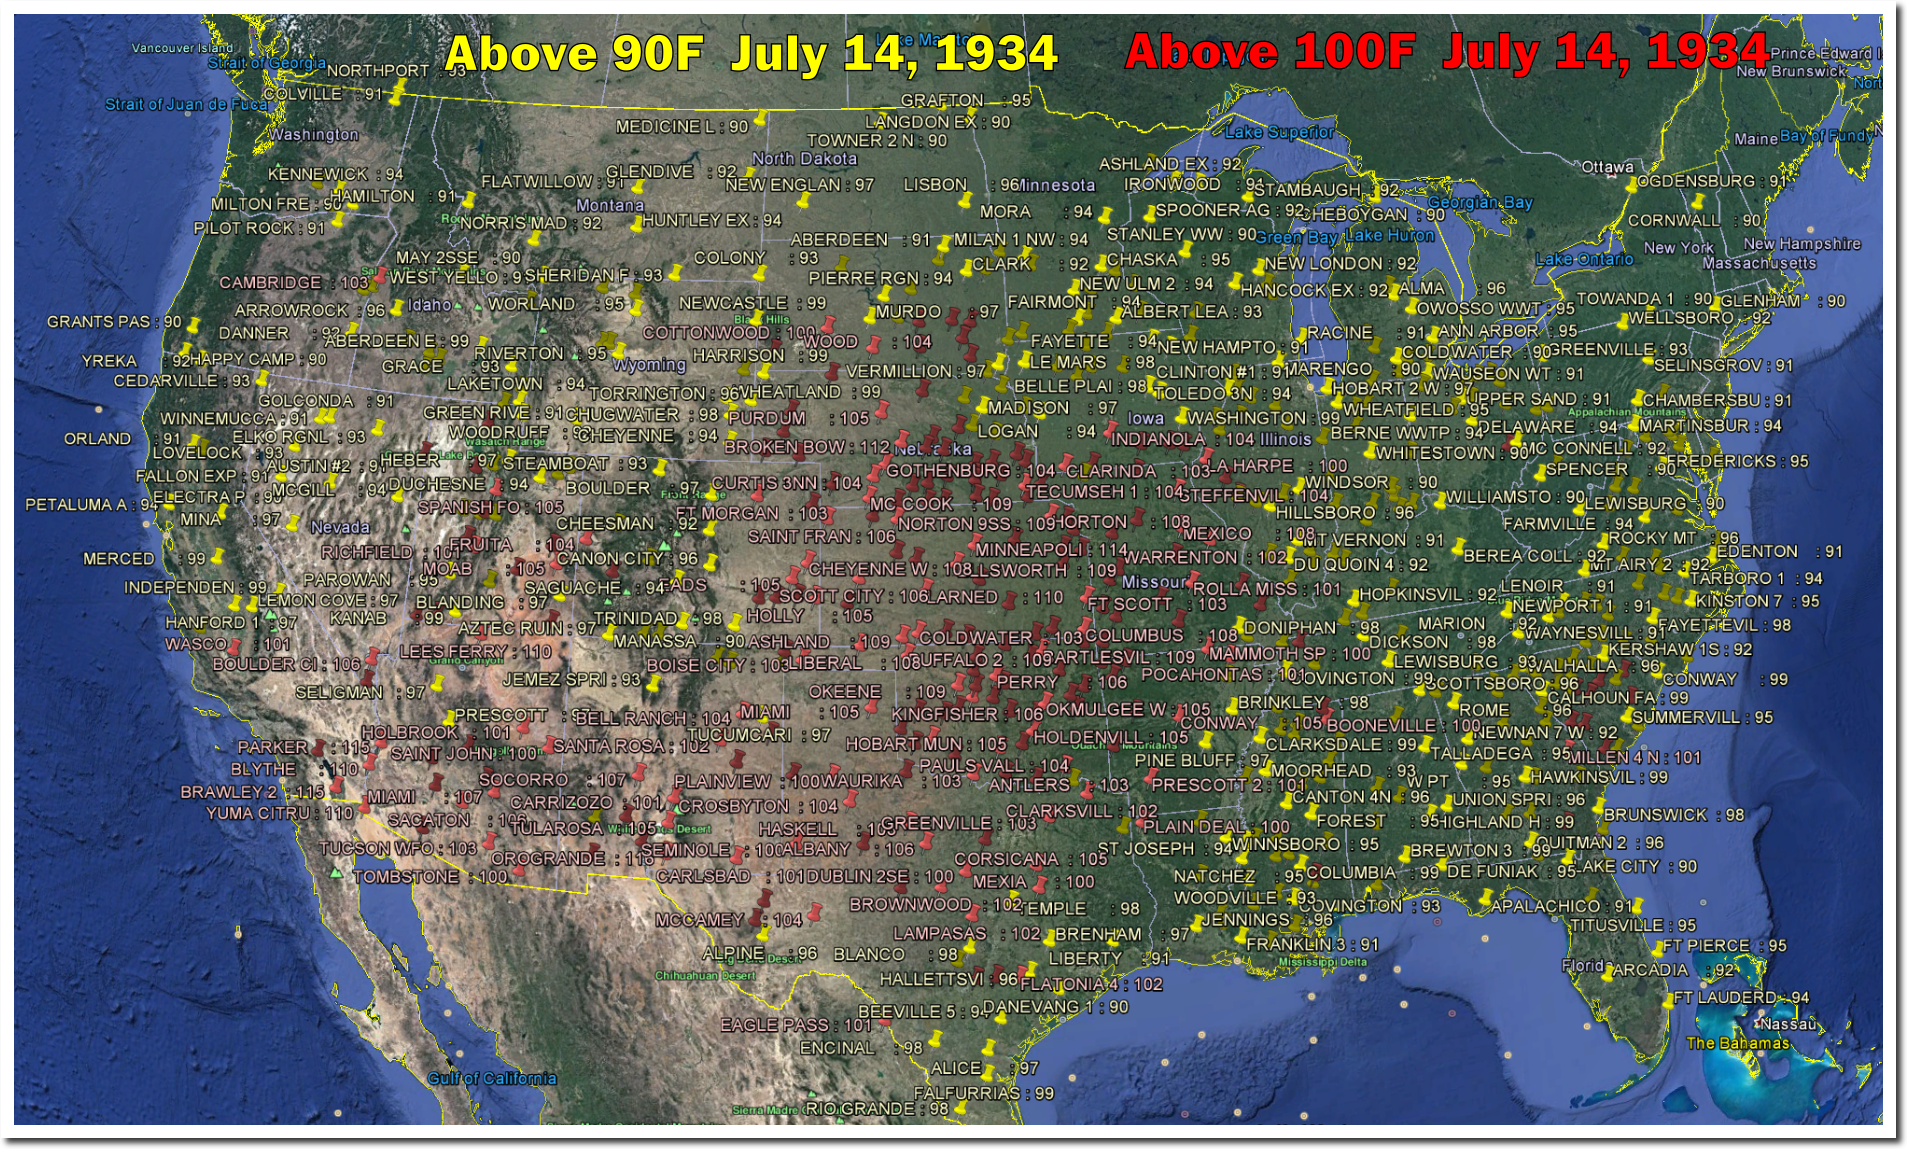 Bastille Day Used To Be An Incredibly Hot Day In The US The - Us weather map july